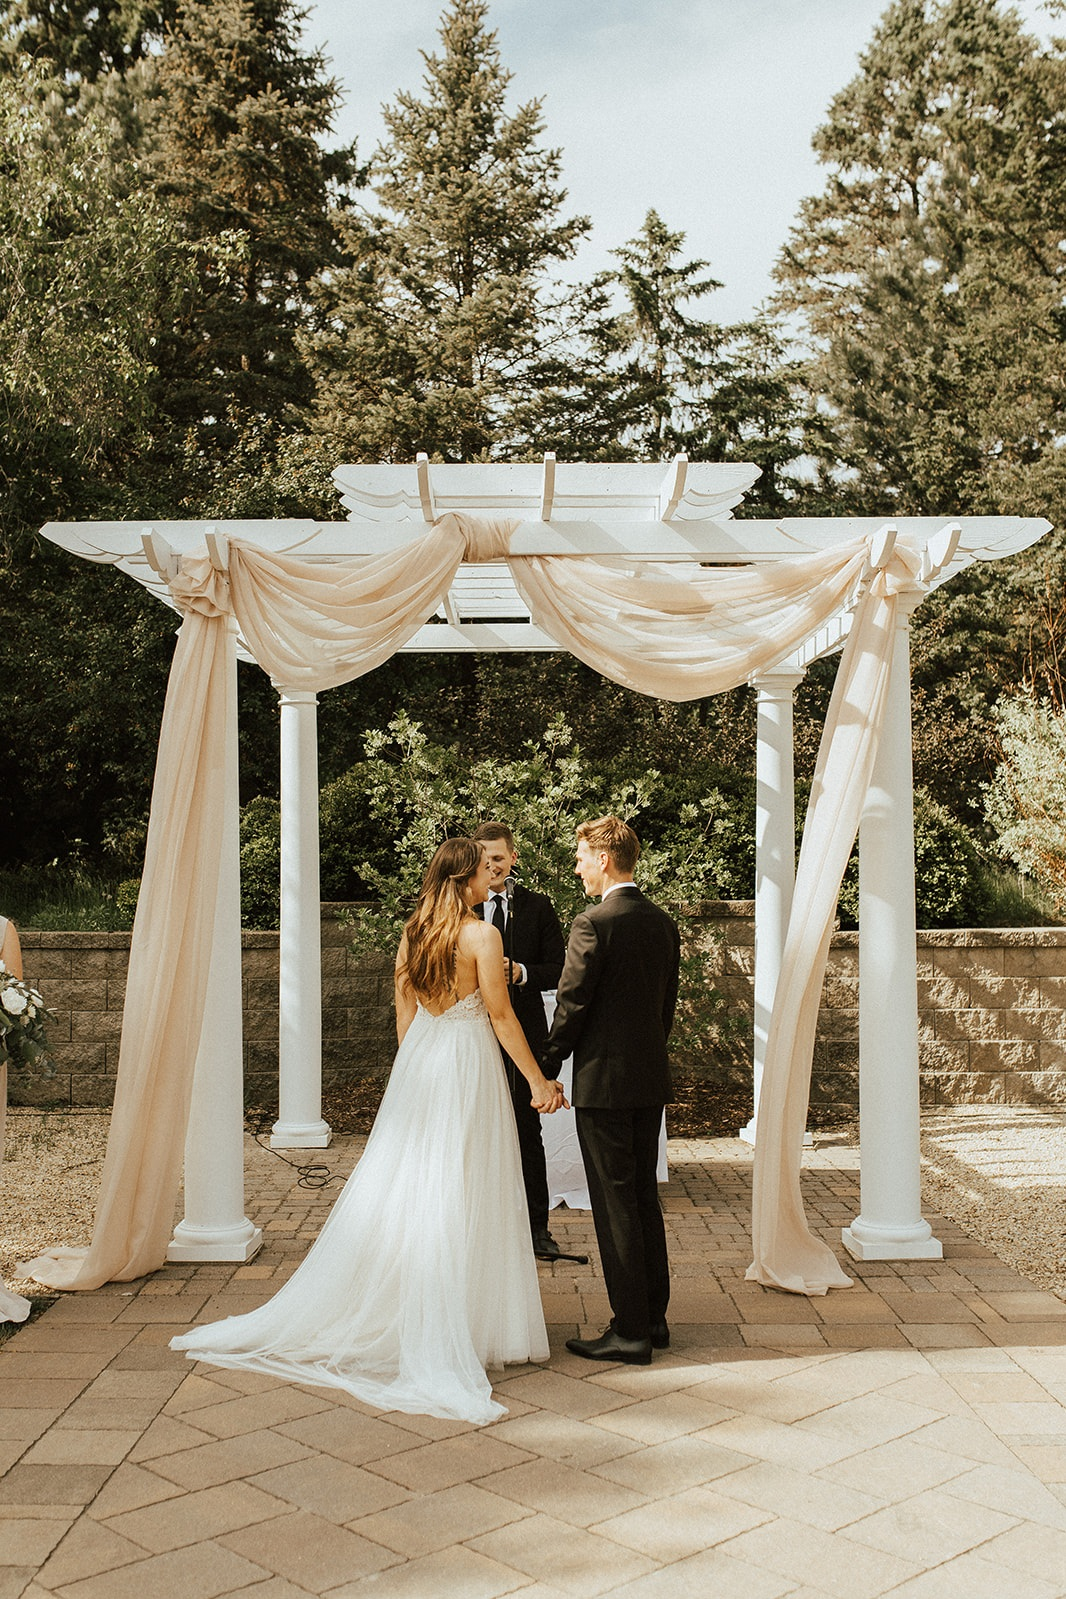 An engaged couple during the ceremony with taupe draping on their pergola